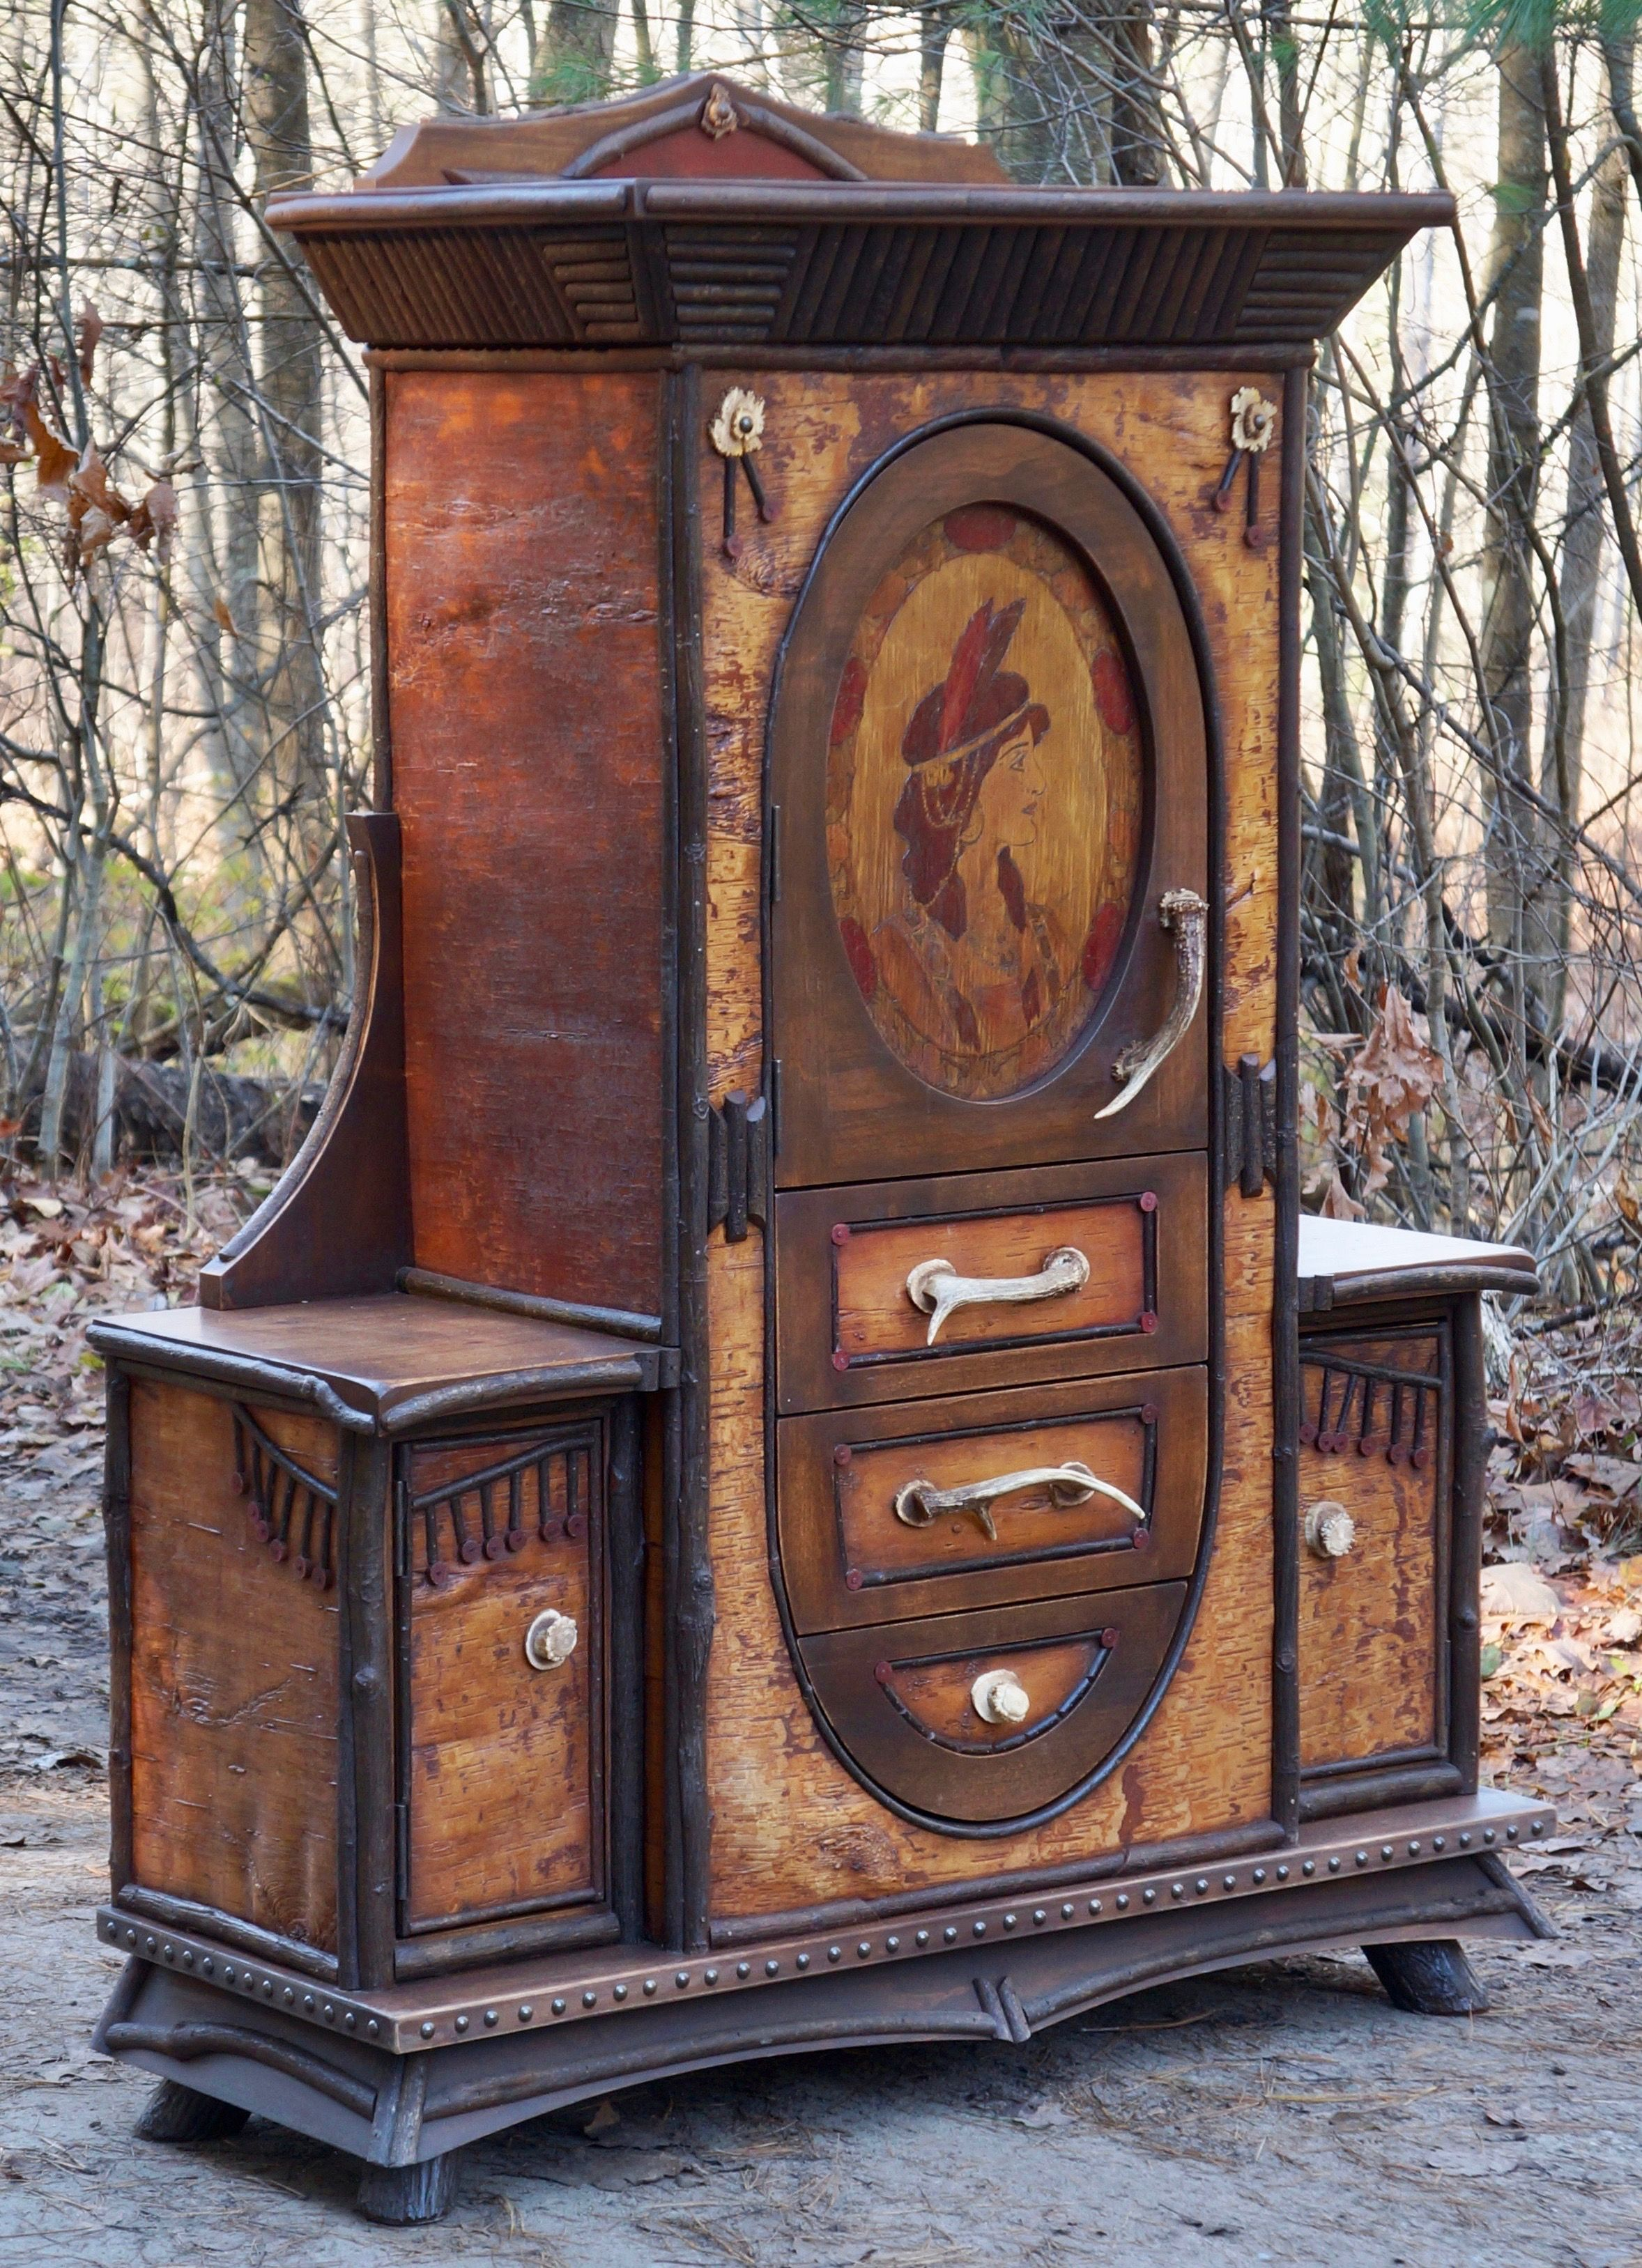 Native American Themed Rustic Cabinet 1920 Pyrography Of Woman With Adirondack Details